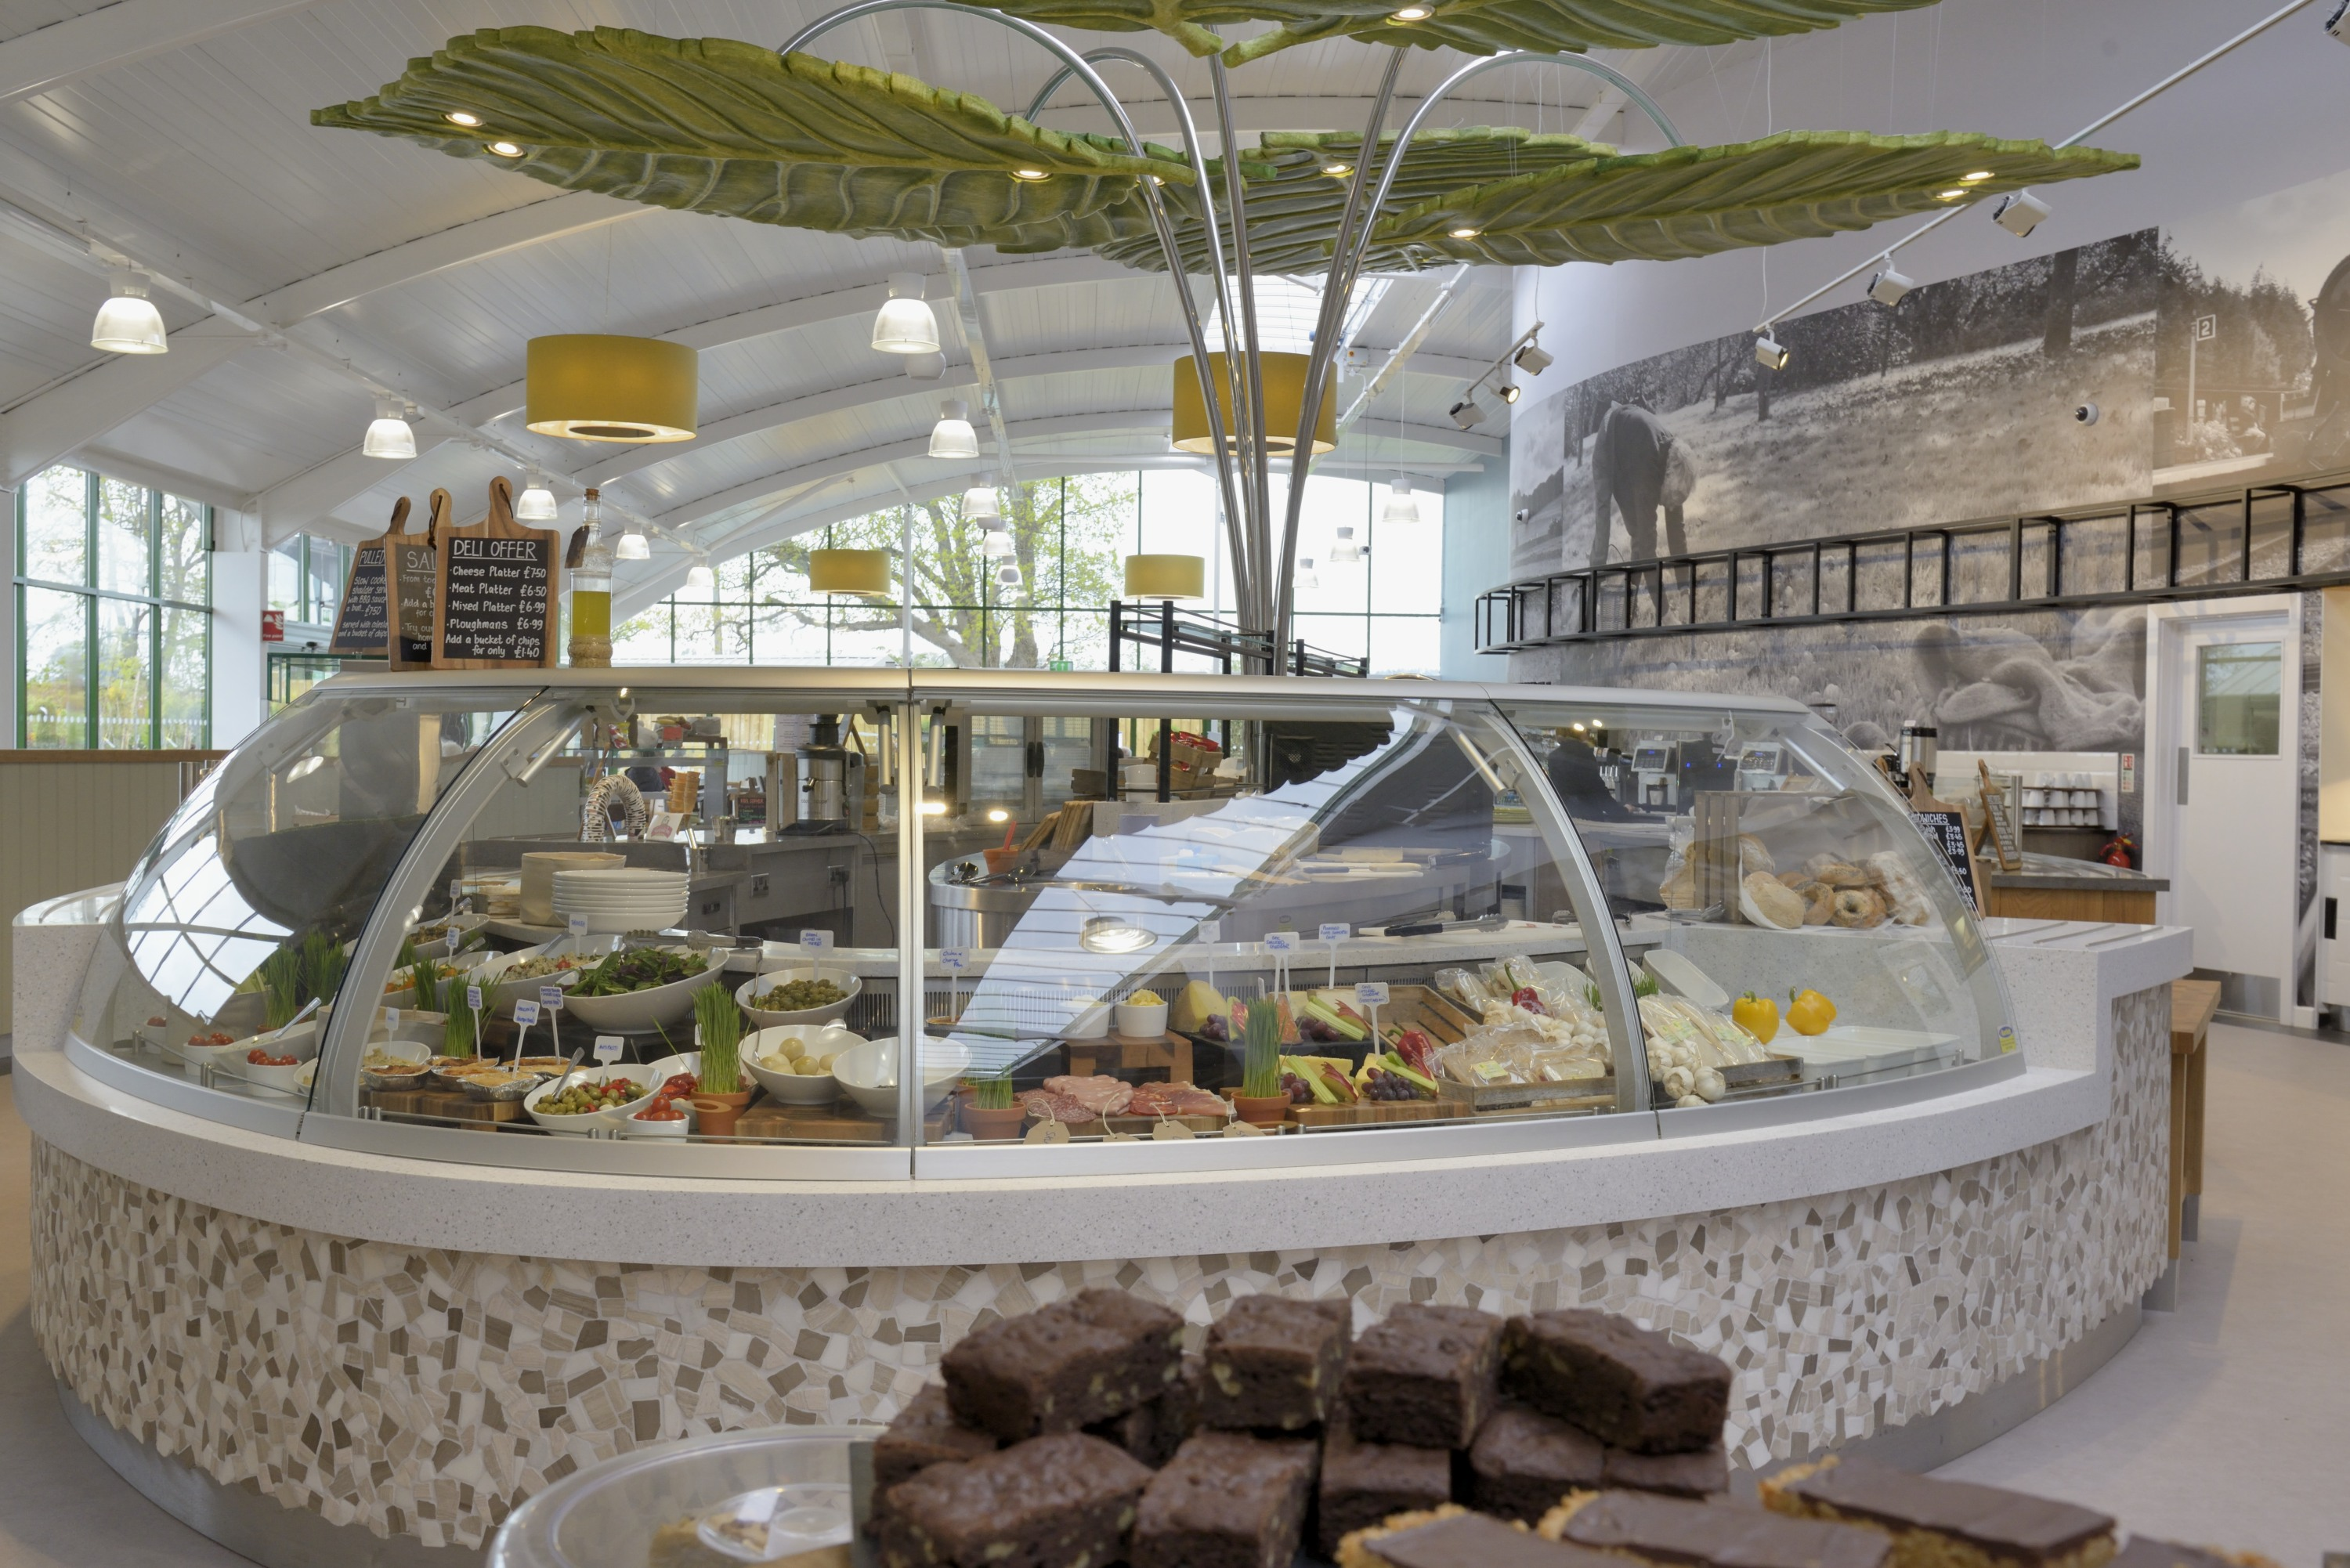 Garden centre update monkton elm opens elm tree restaurant for Garden centre